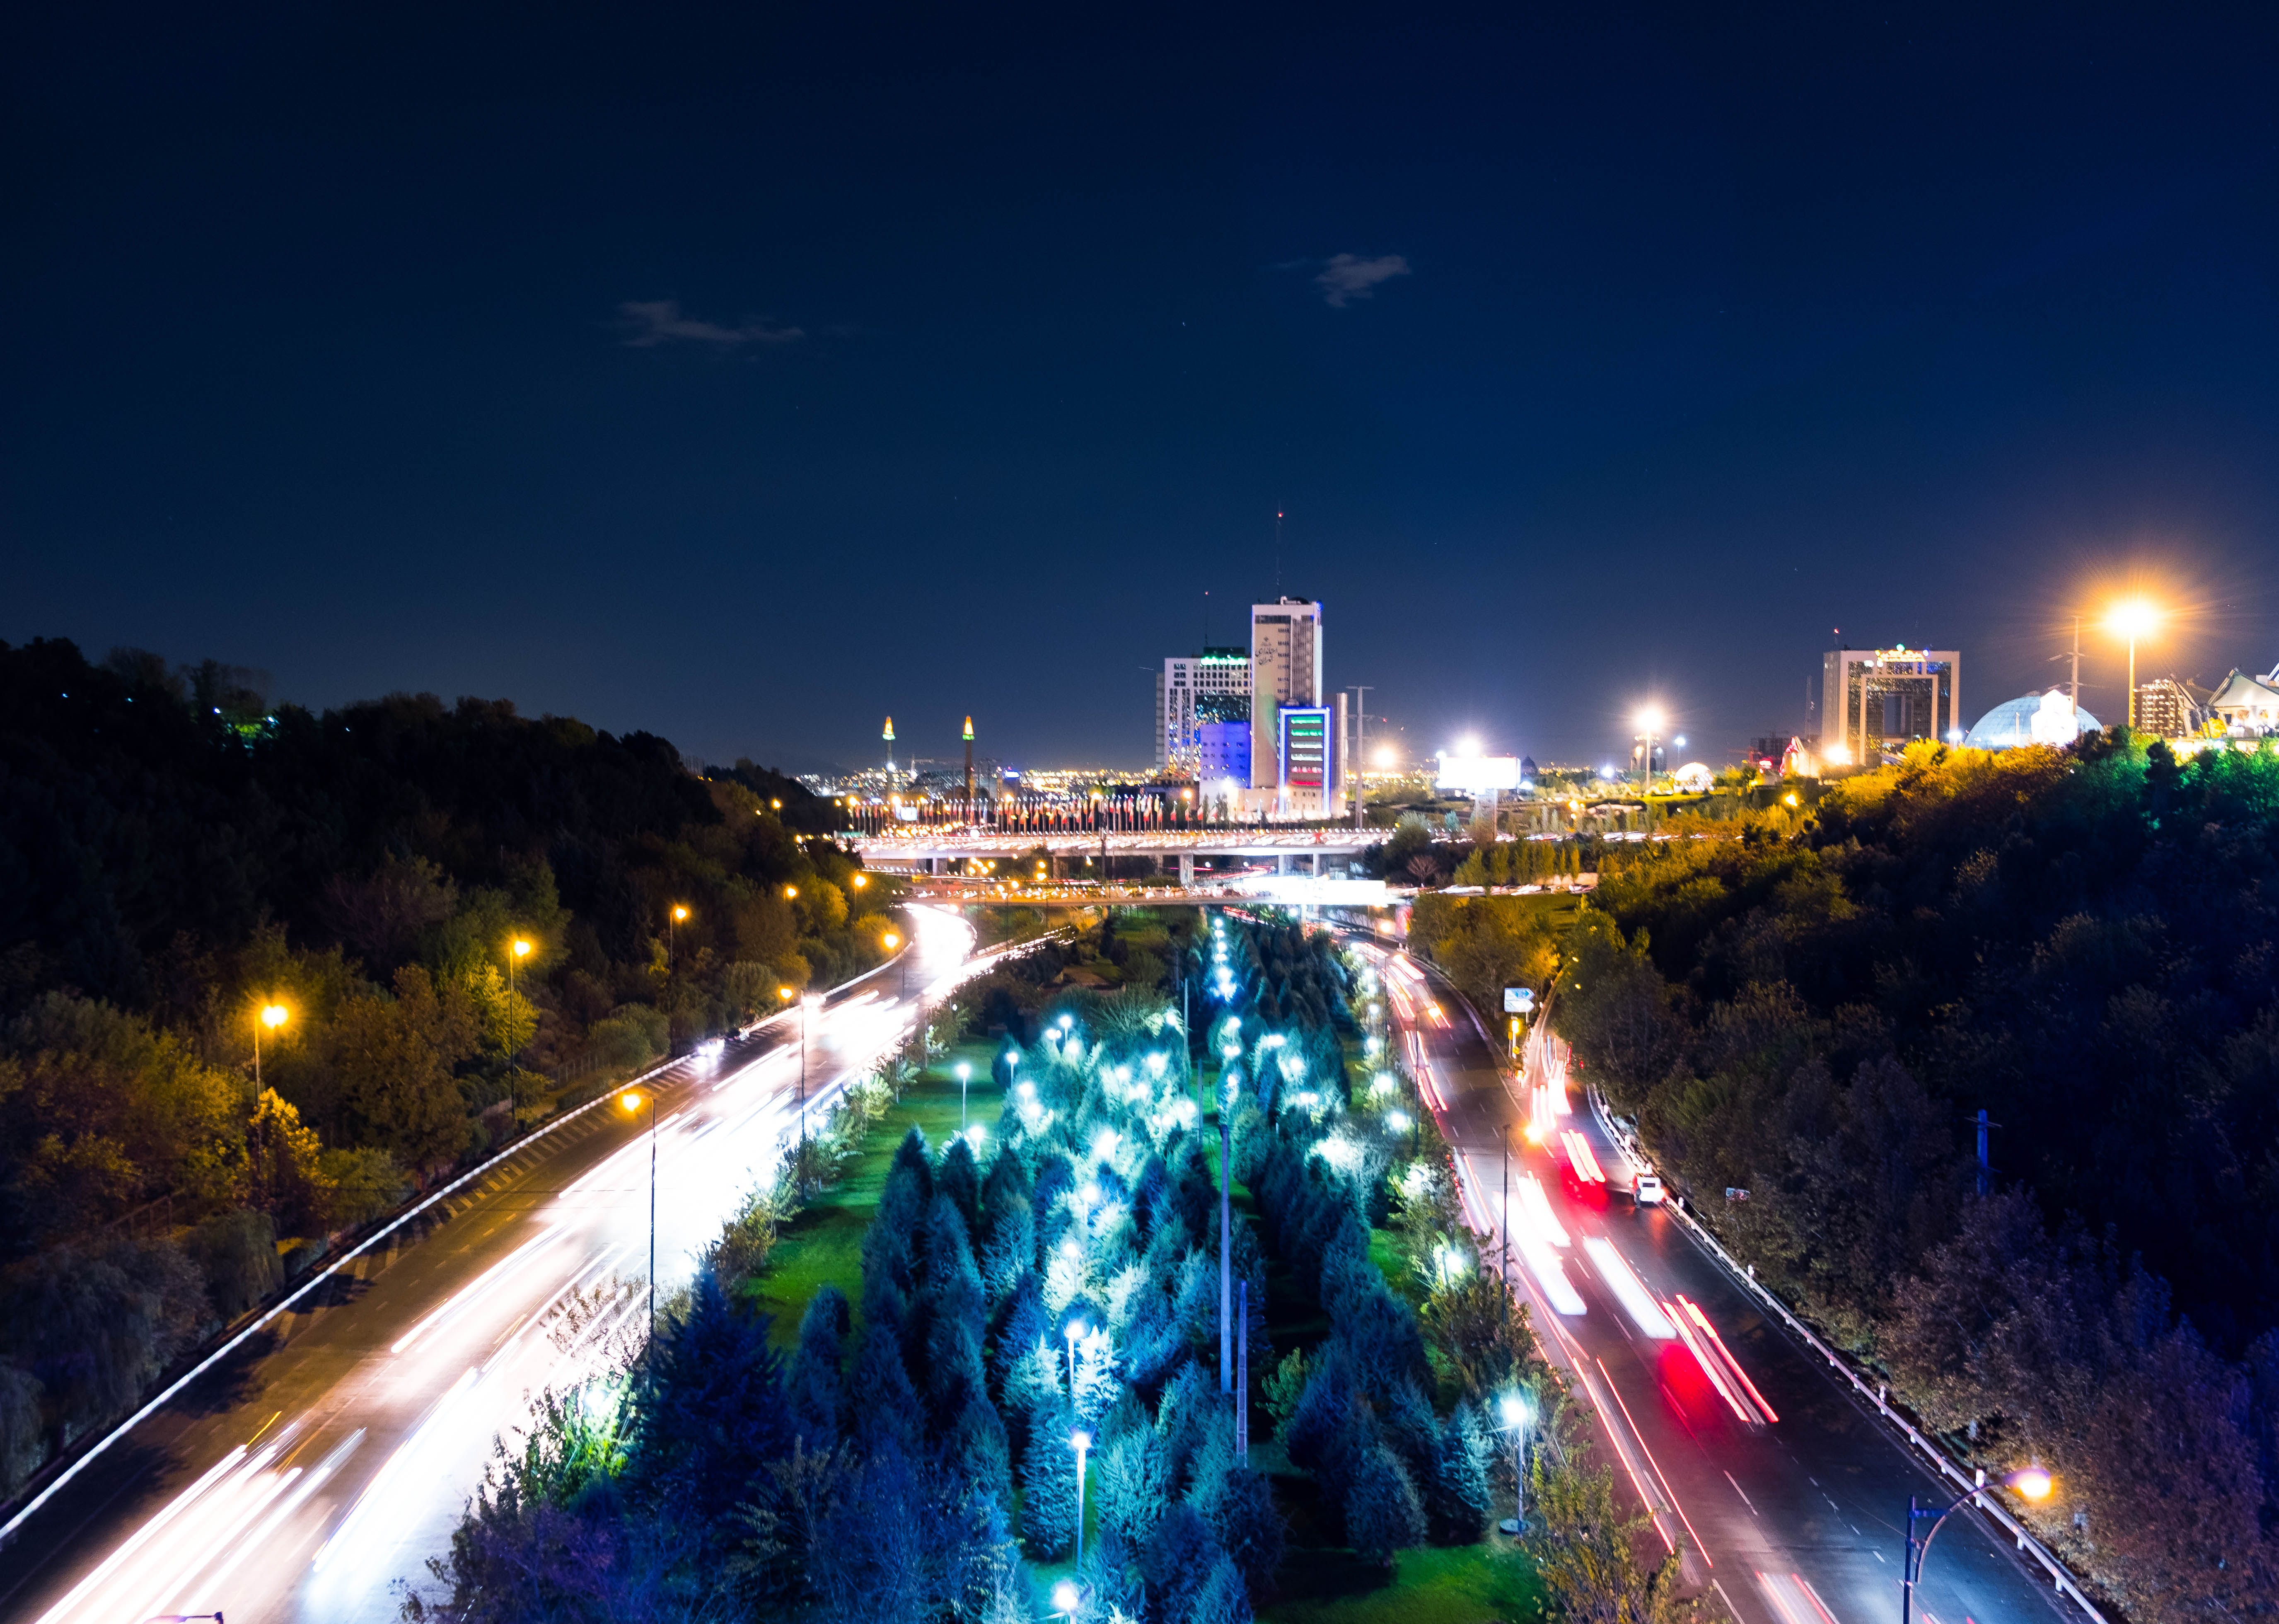 Time Lapse Photography Of Cars At Night